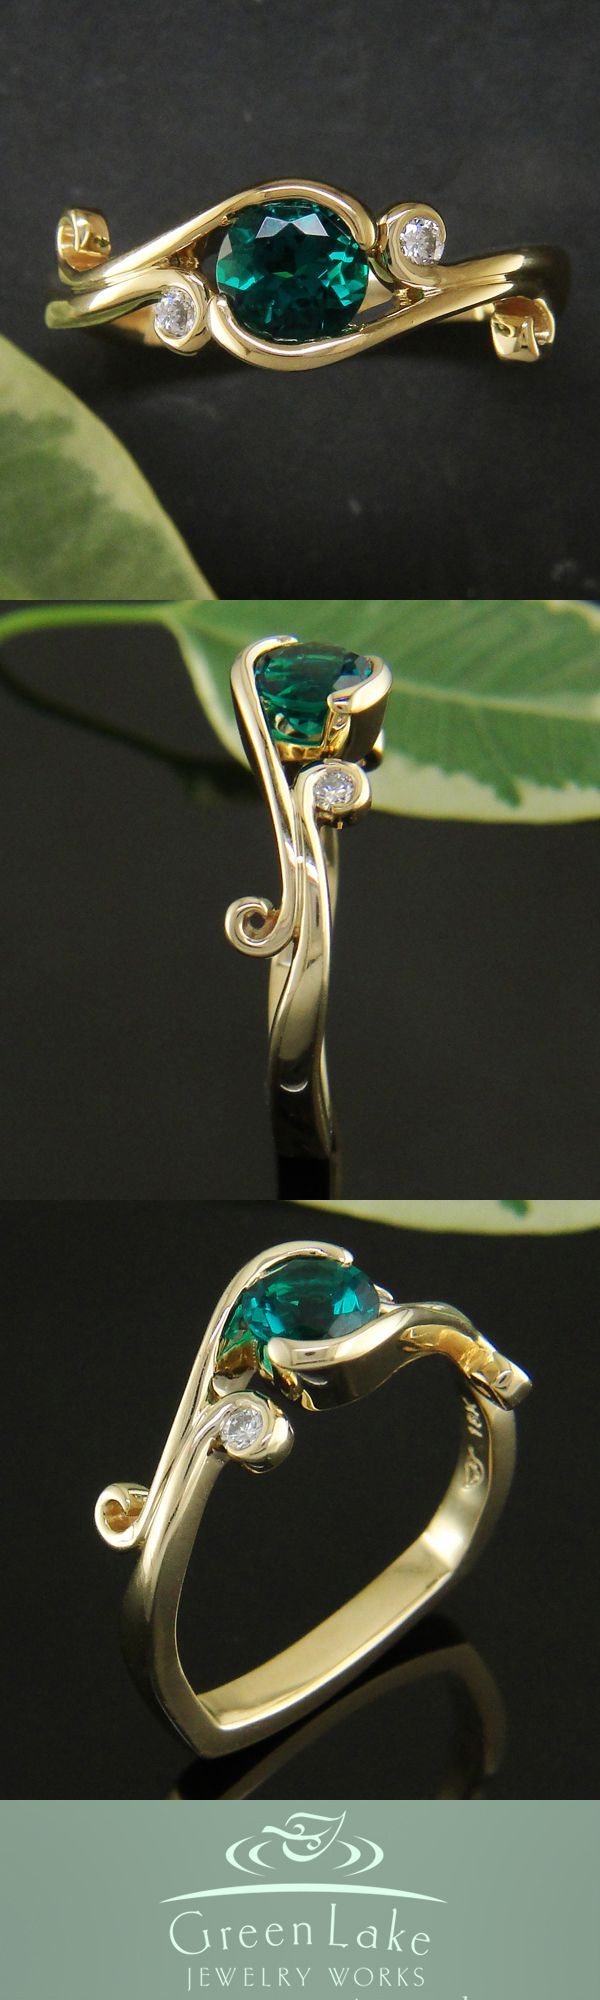 18k yellow gold and emerald engagement ring. I don't usually like gold, but this is pretty